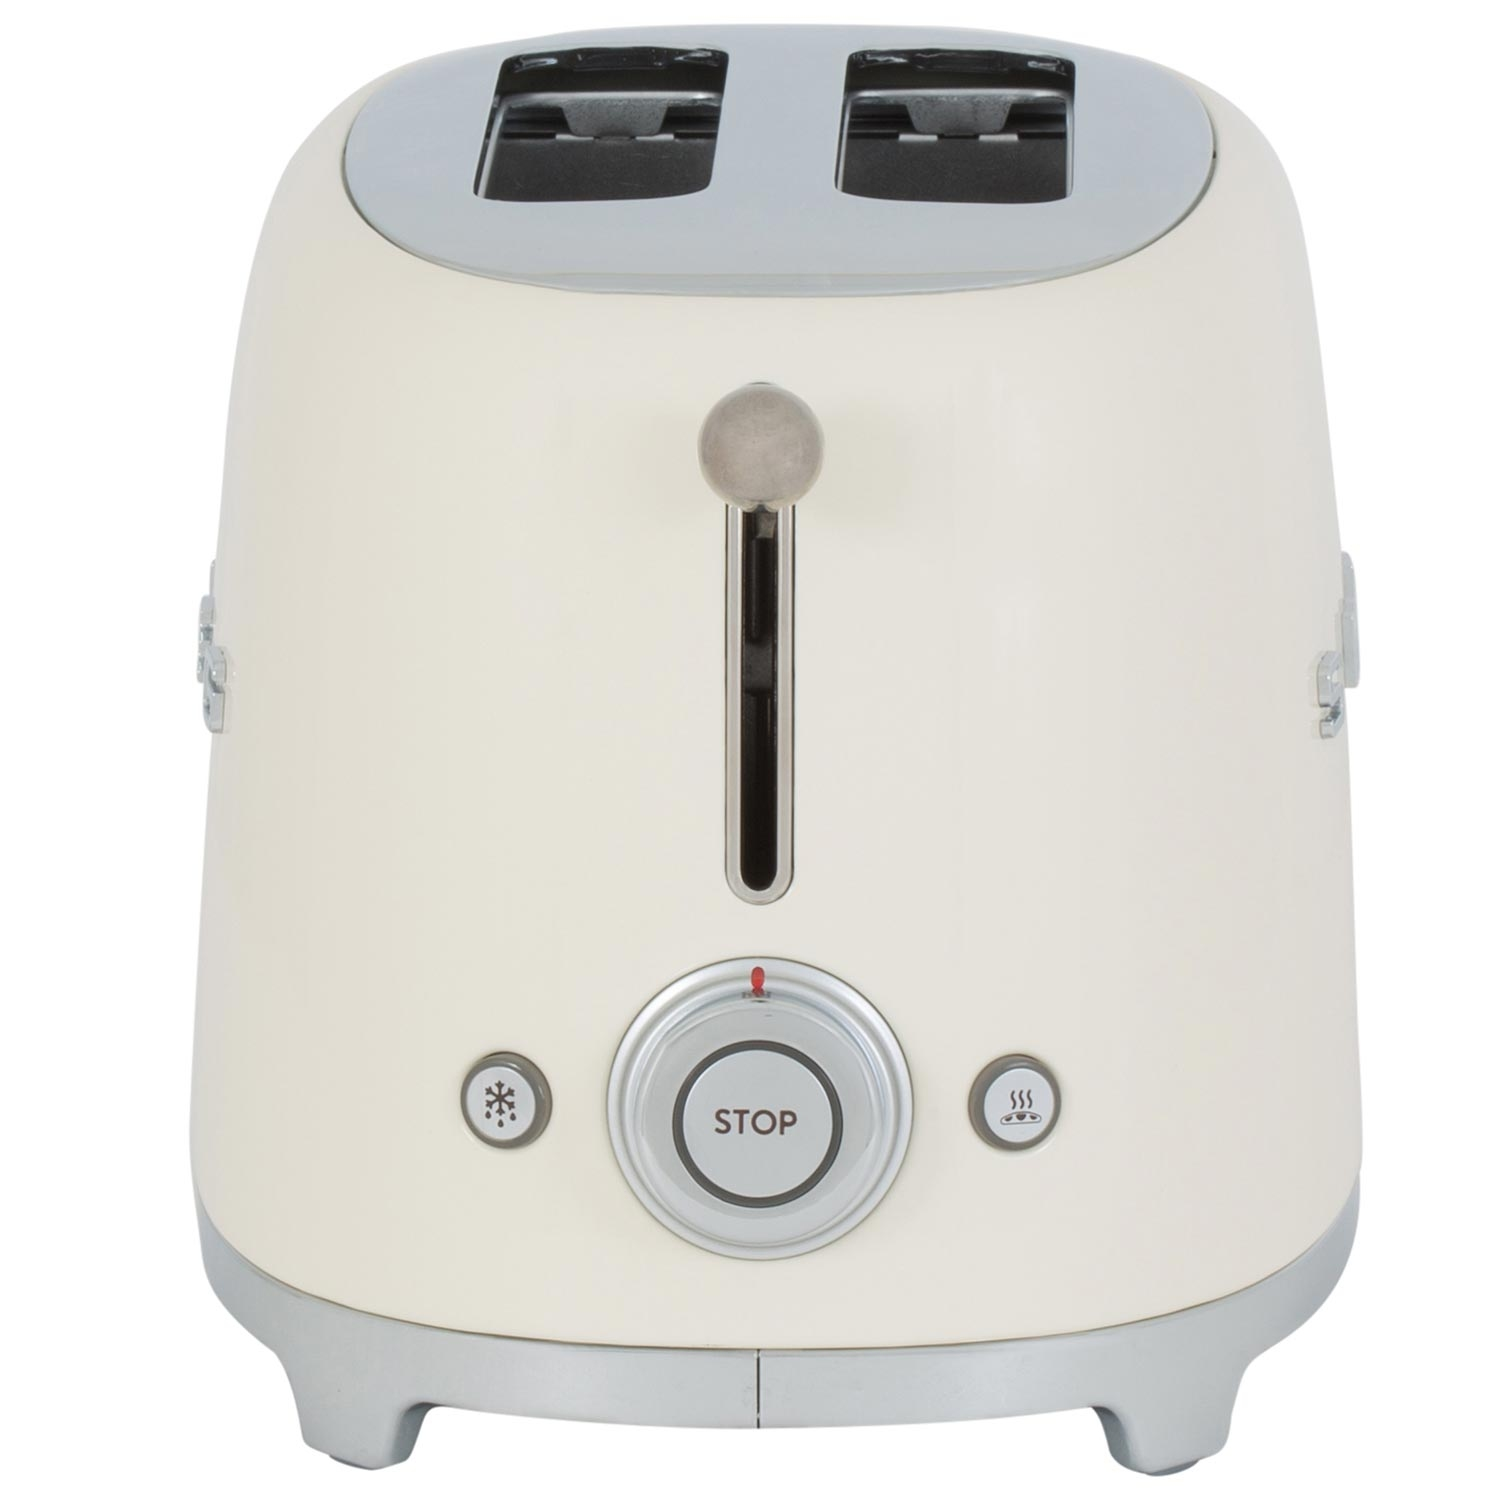 Smeg 2 Slice Toaster - Cream - 10